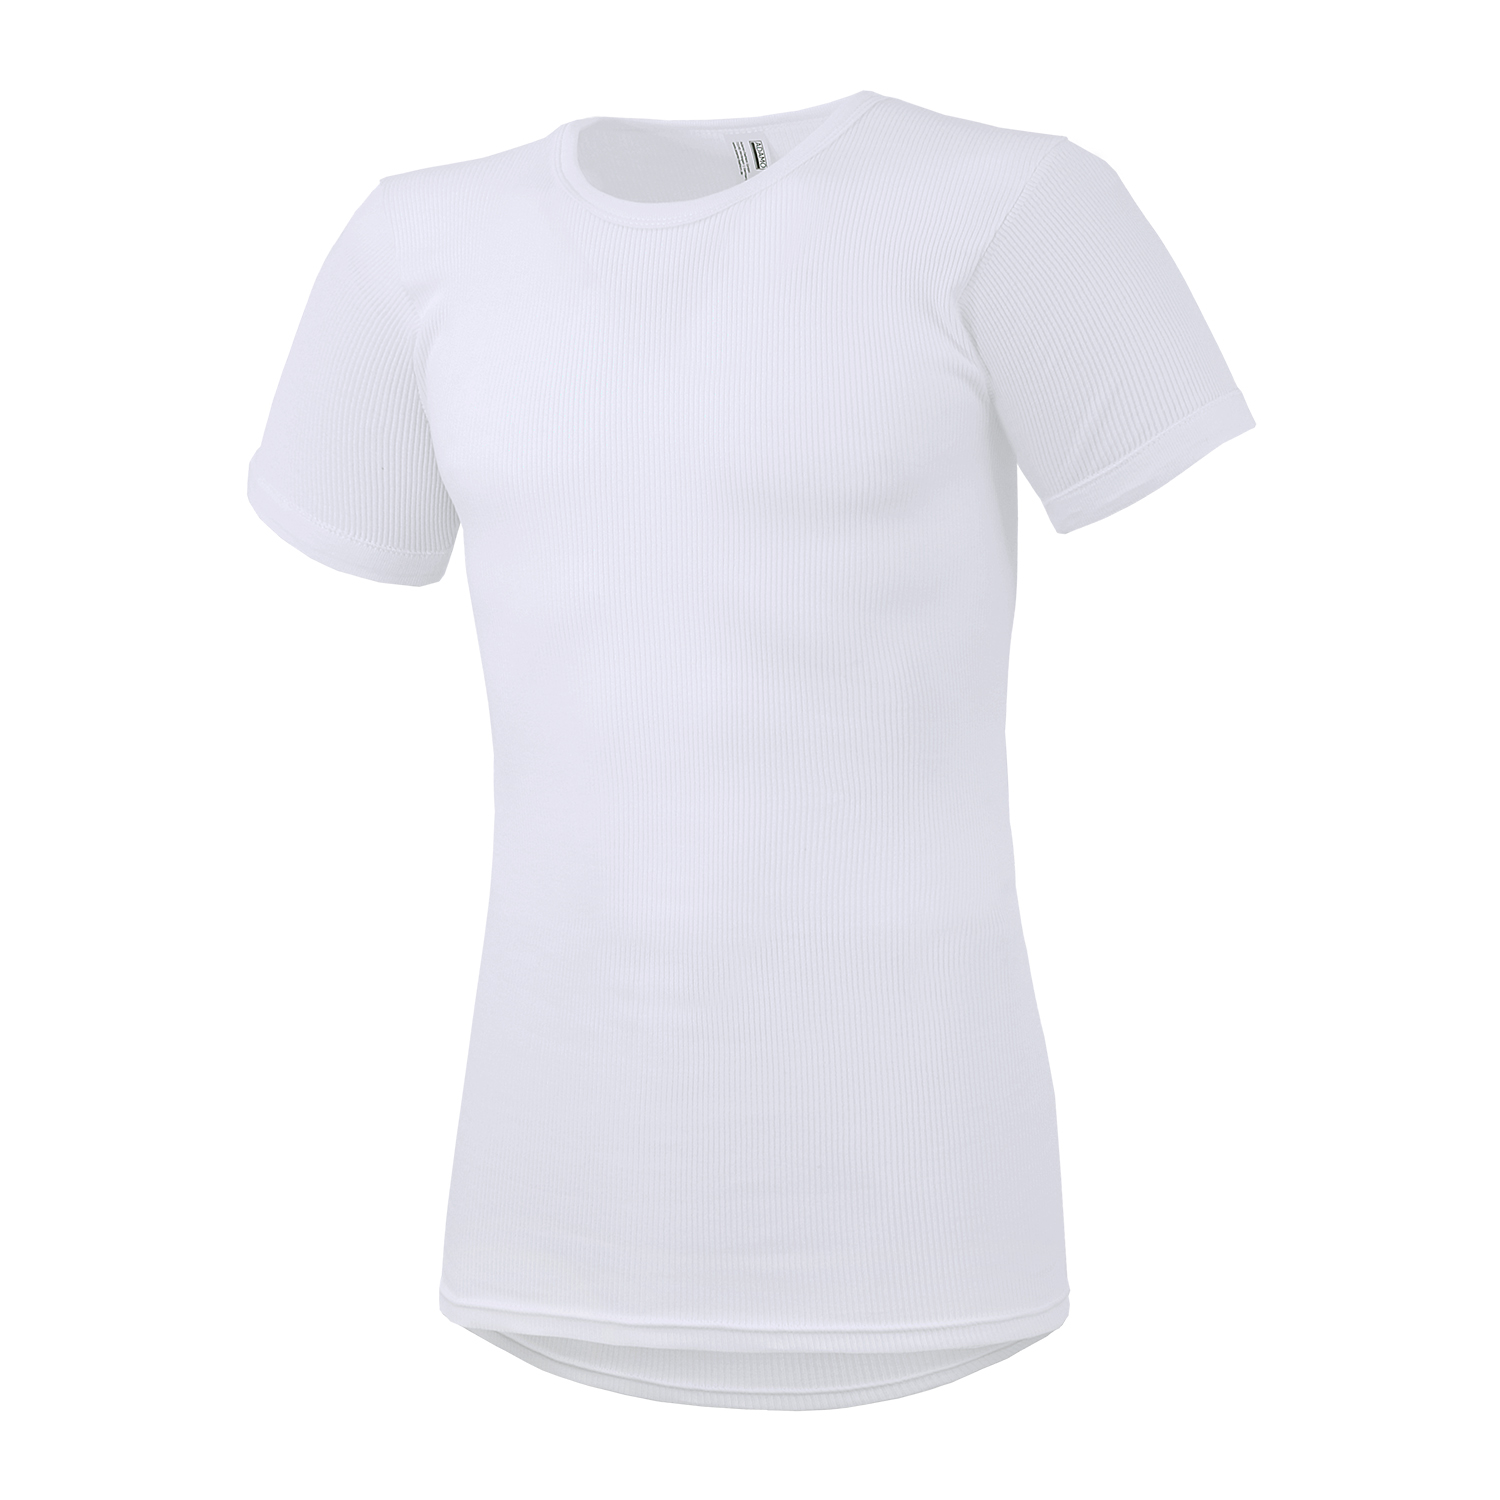 Detail Image to White double rib t-shirt PRESTIGE by ADAMO up to oversize 20